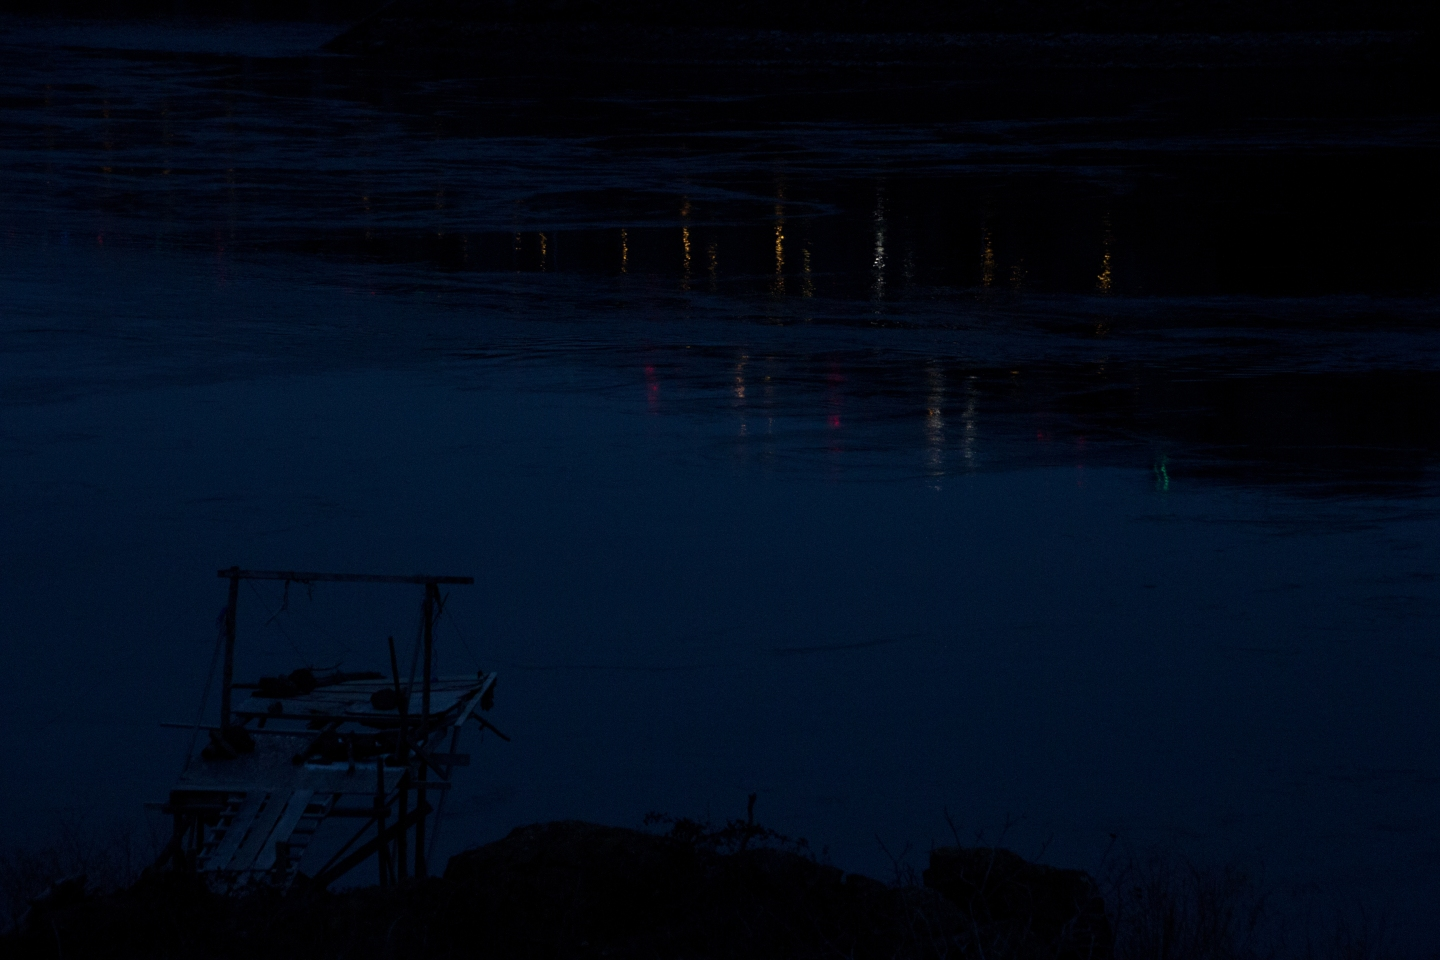 Blue Light Fishing Platform in front of the Military Lights on the NChi'Wana